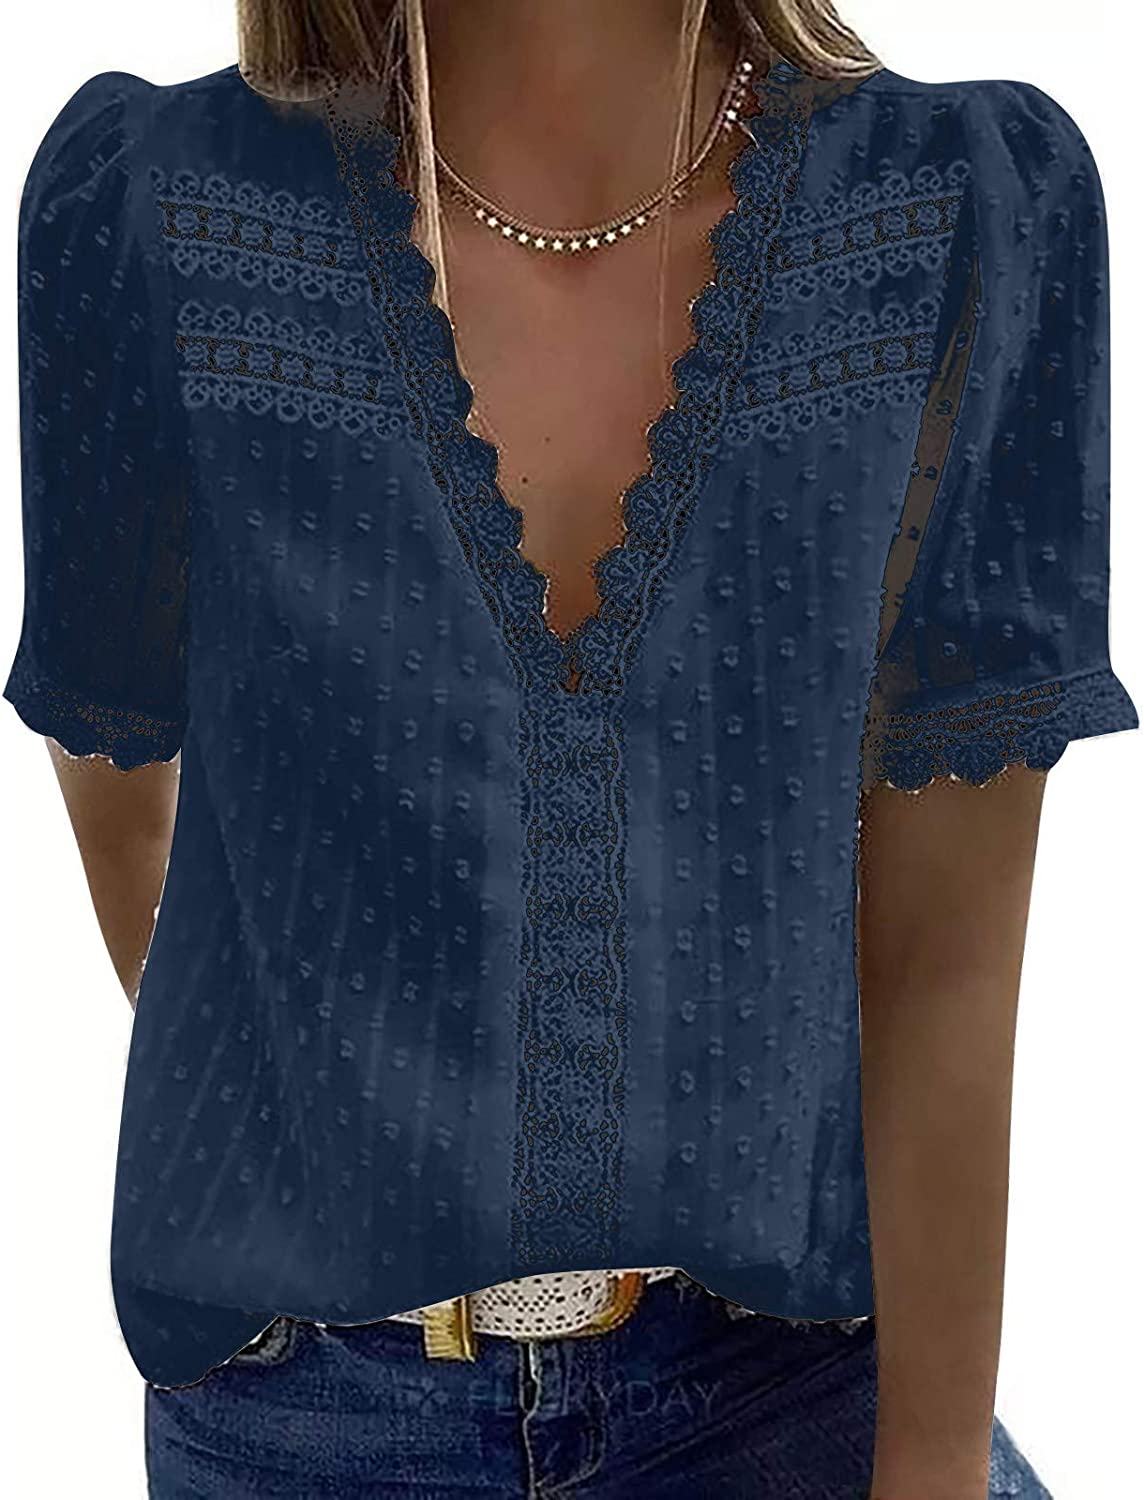 NIANTIE Women Summer Fashion New Lace Trim V-Neck Casual T-Shirt Sleeveless Tank Tops Solid Color Blouse Tunic